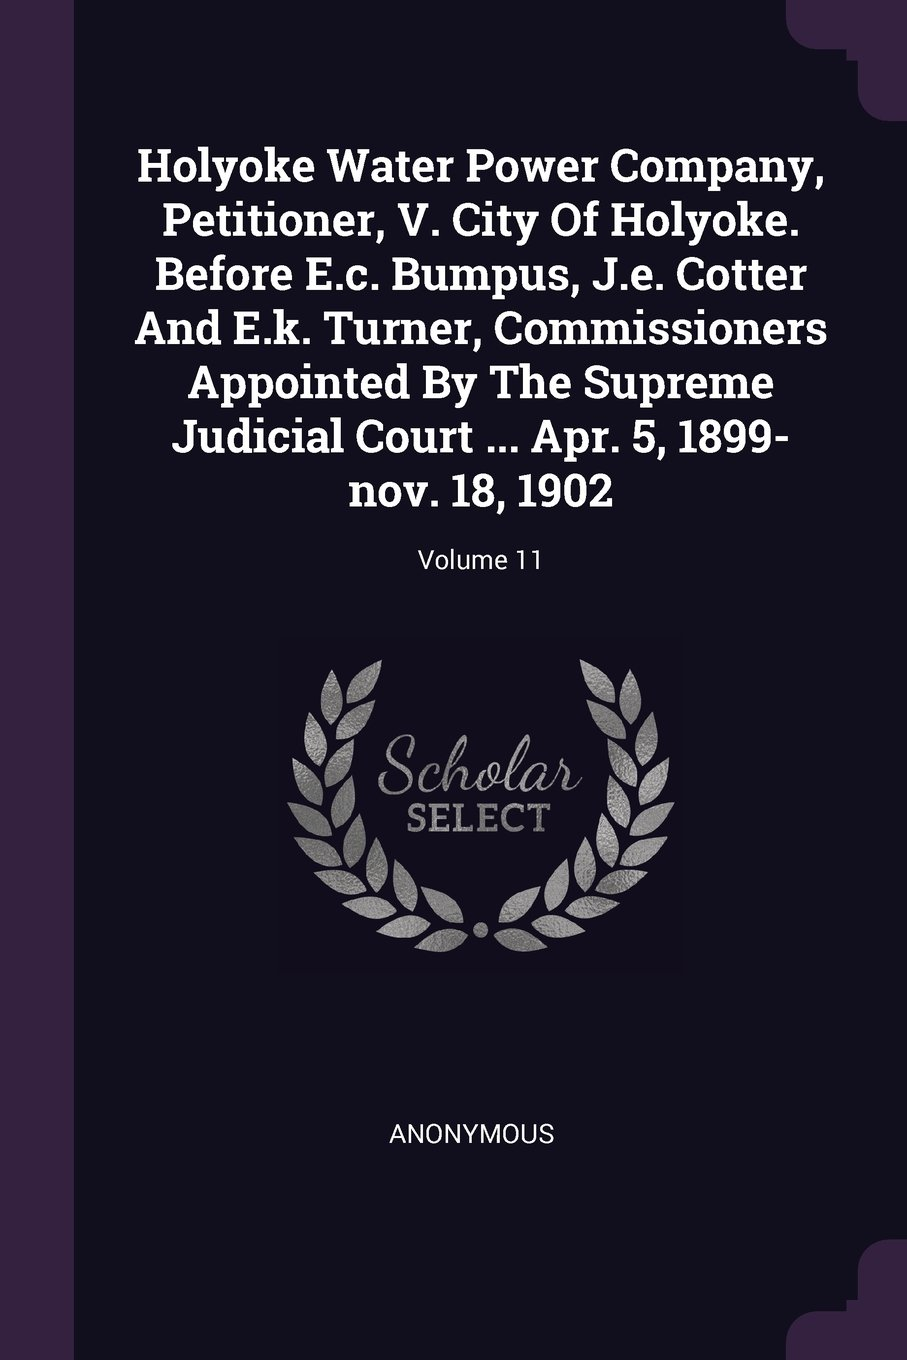 Download Holyoke Water Power Company, Petitioner, V. City Of Holyoke. Before E.c. Bumpus, J.e. Cotter And E.k. Turner, Commissioners Appointed By The Supreme ... ... Apr. 5, 1899-nov. 18, 1902; Volume 11 pdf epub